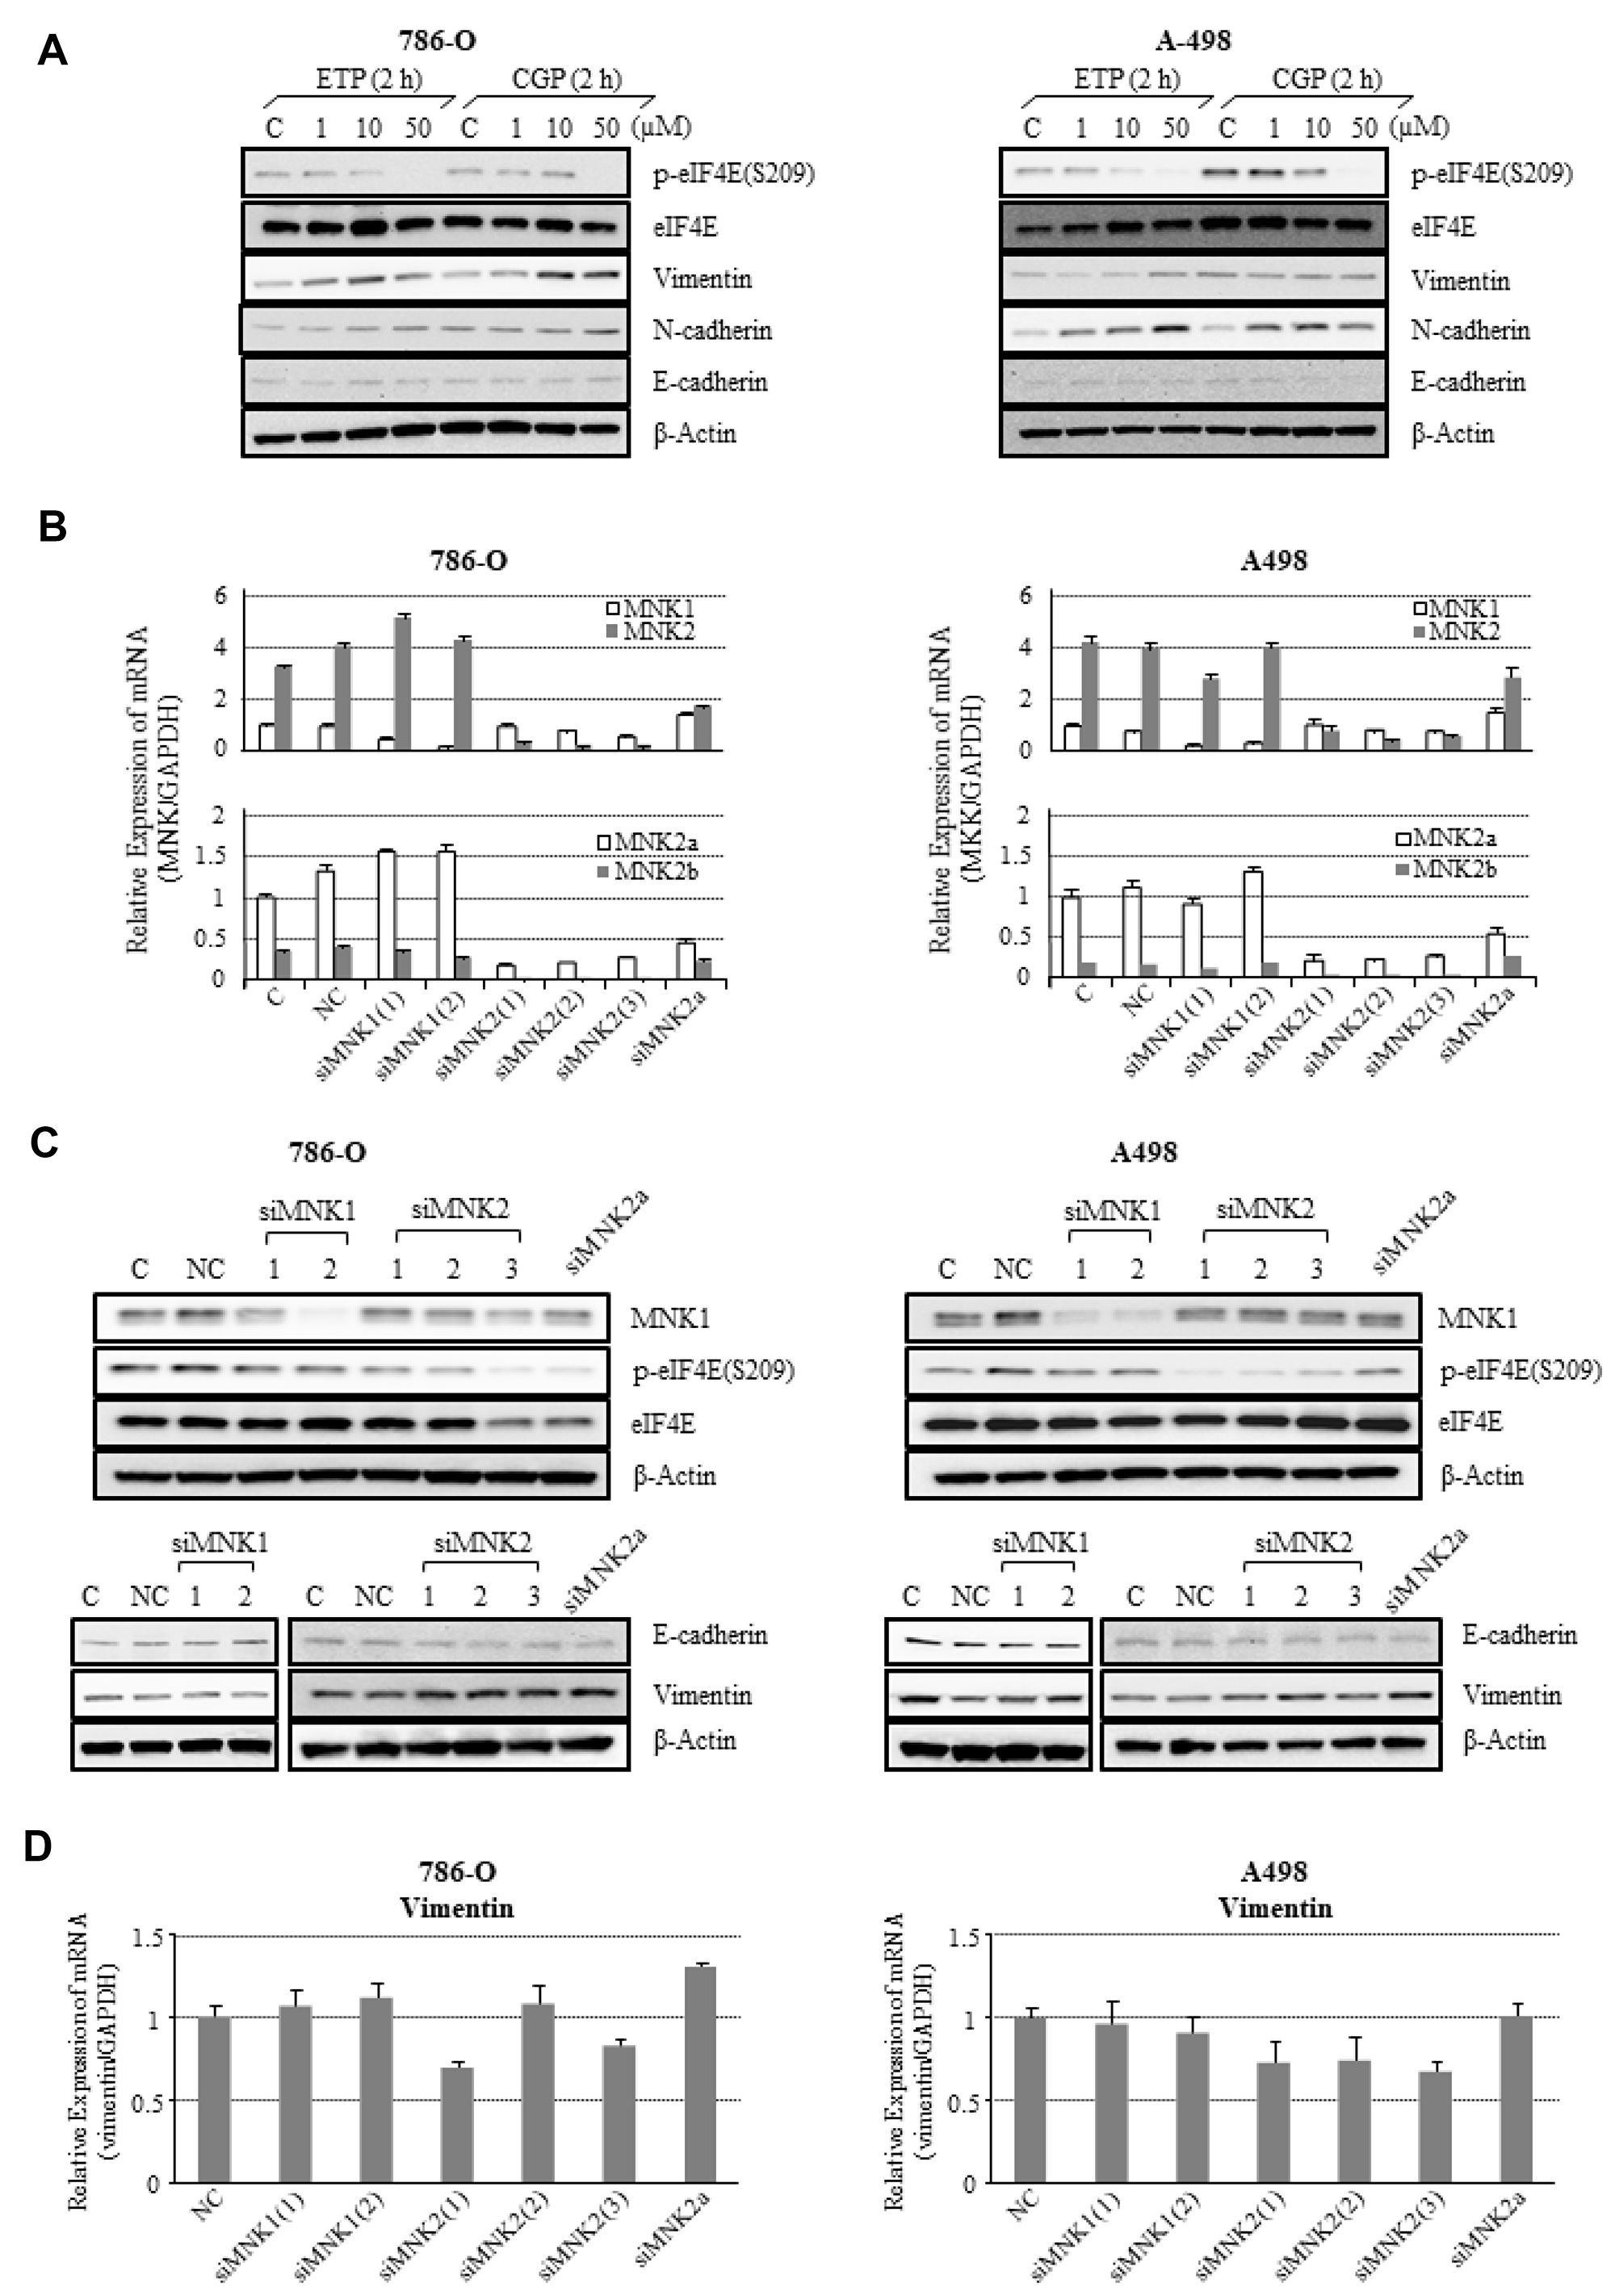 Effects of MNK inhibition on MNK/eIF4E signaling and expression of EMT markers in 786-O and A498 cells.